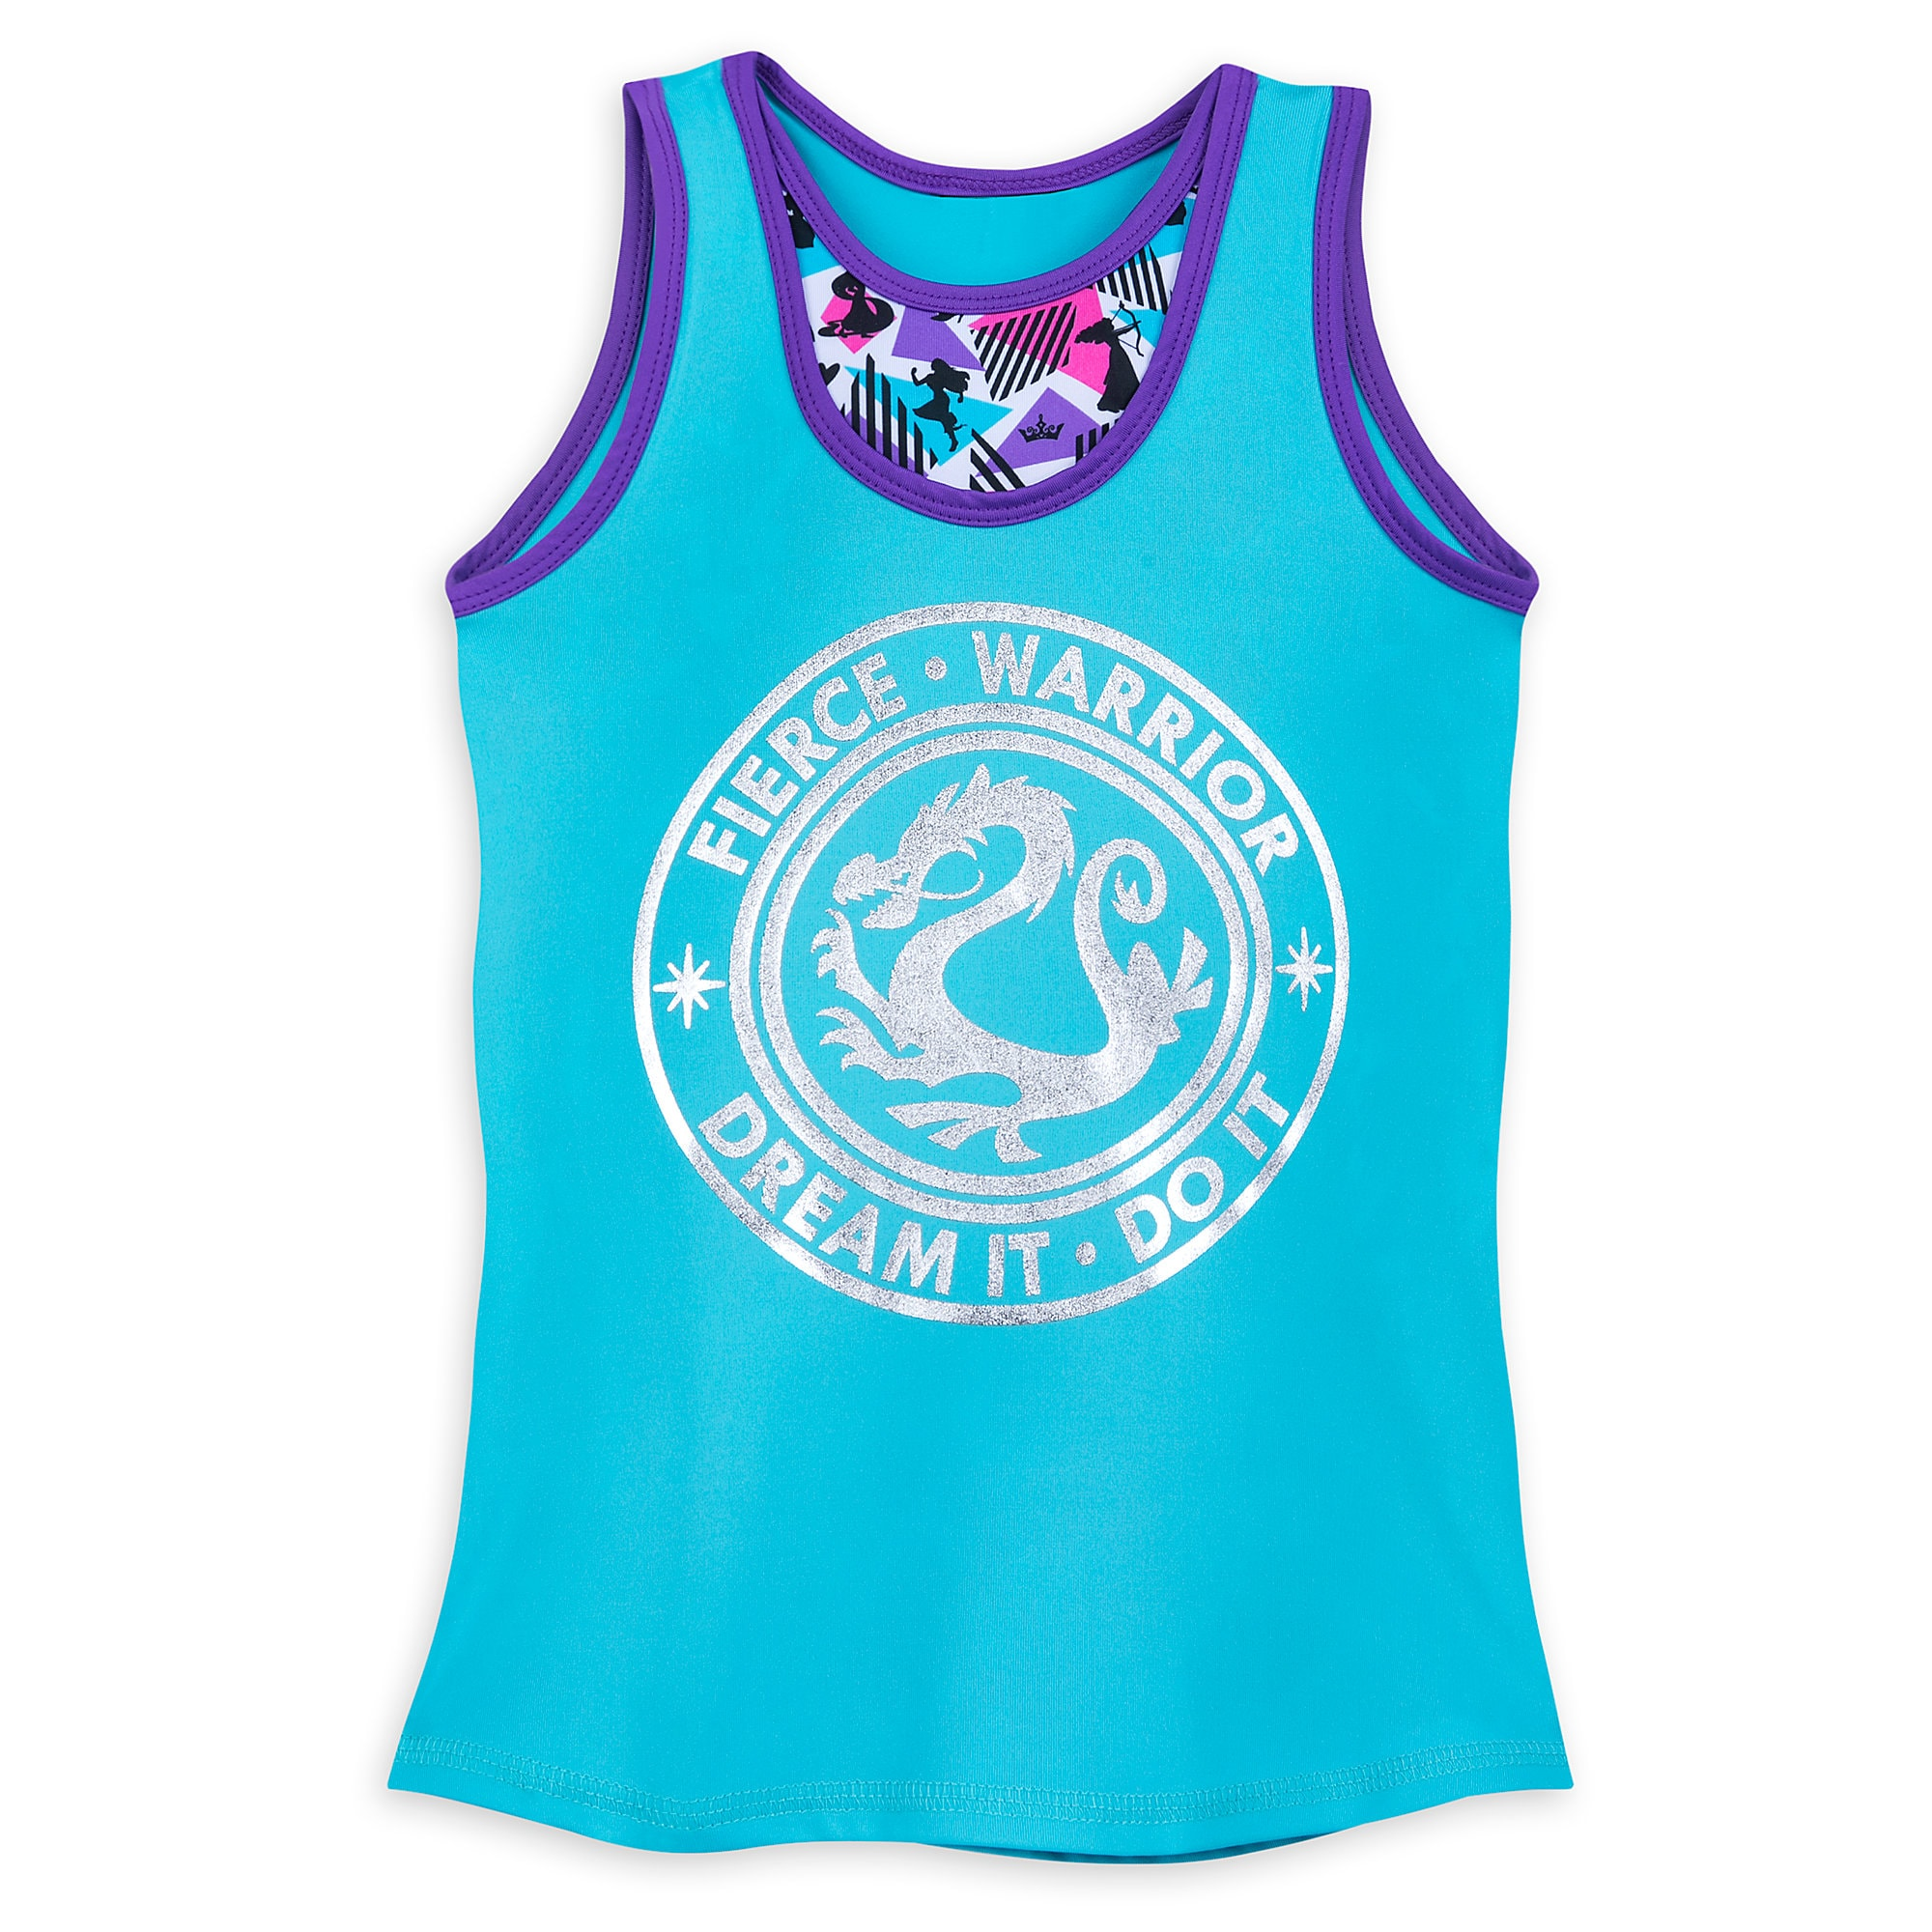 Disney Princess Reversible Performance Tank Top for Girls by Our Universe